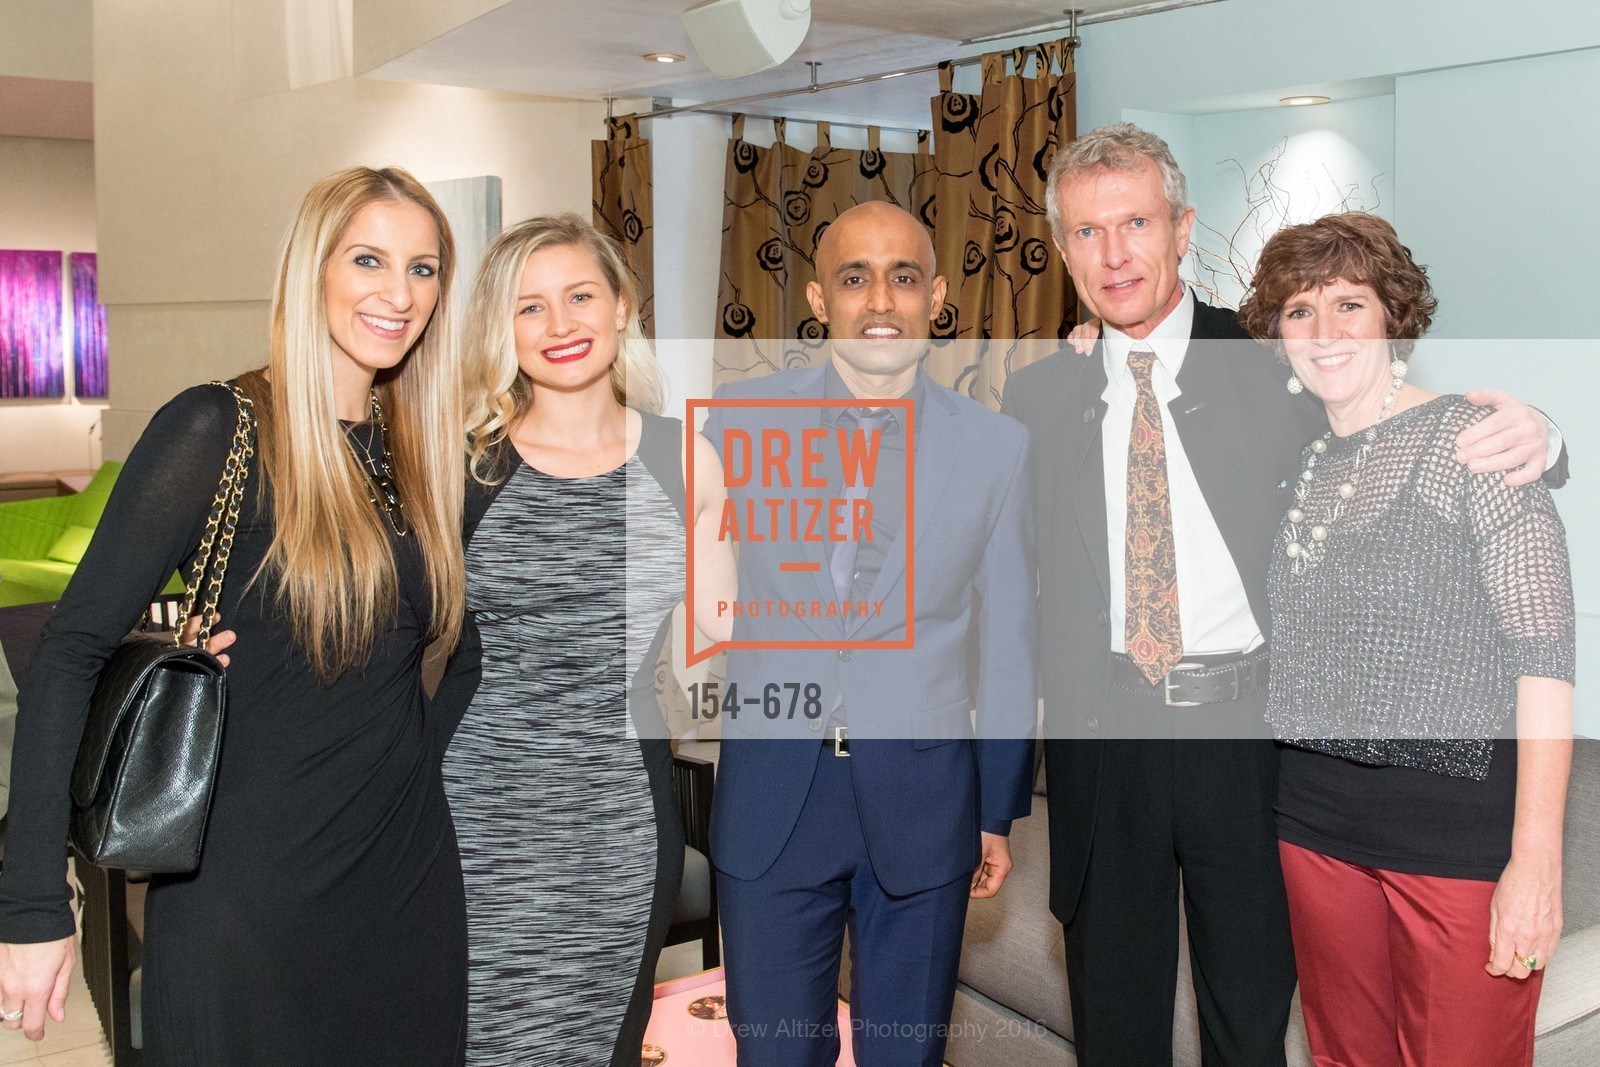 Victoria Gazulis, Skye Grace, Sunil Sharma, Walter Dickhaut, Denise Beatty, 2016 ENCORE! Launch Party, Ligne Roset. 162 King Street, January 7th, 2016,Drew Altizer, Drew Altizer Photography, full-service agency, private events, San Francisco photographer, photographer california